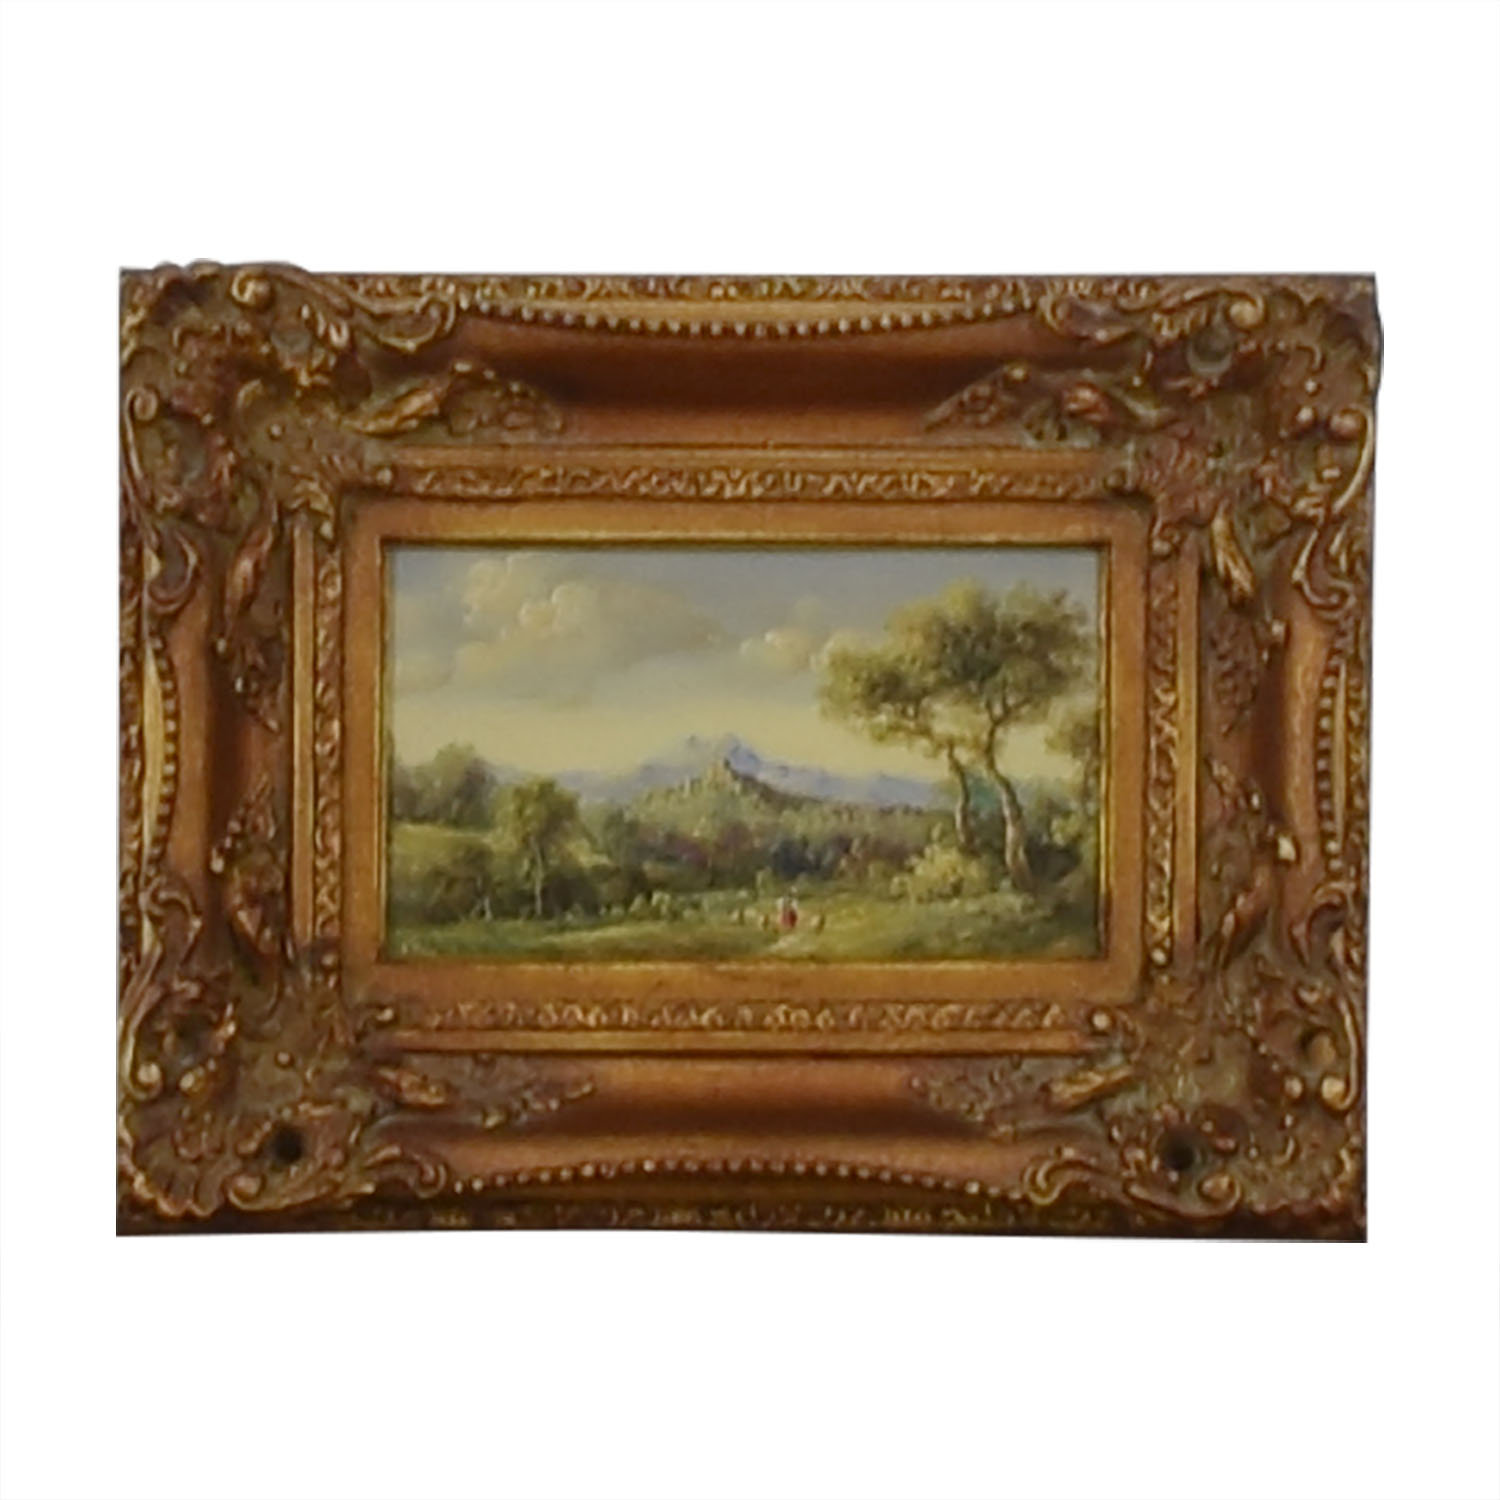 Framed Landscape Painting nyc